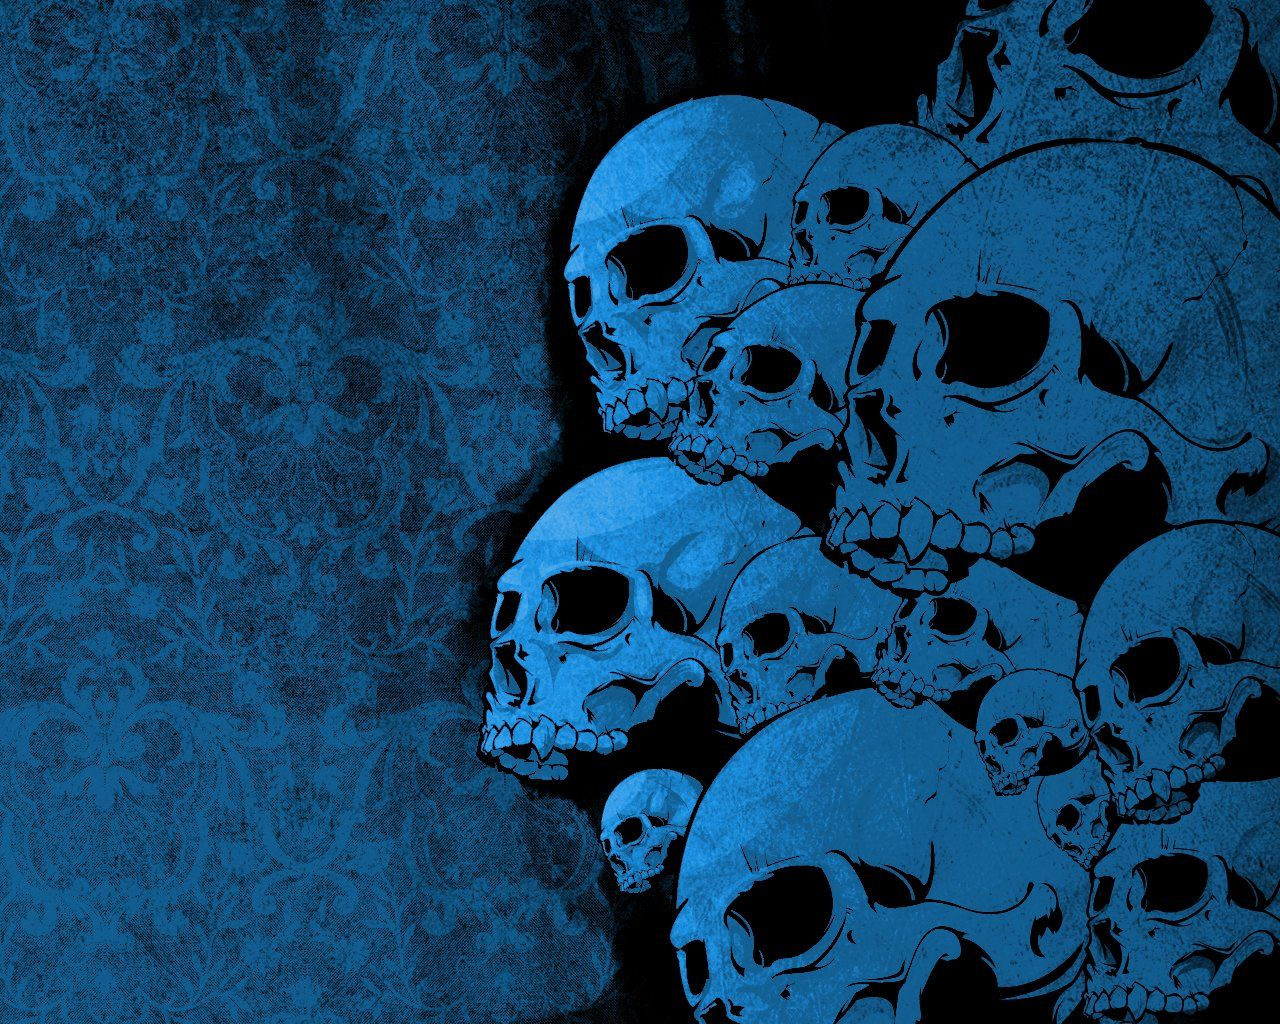 Heavy Metal Metalhead Skulls Wallpapers Skeletons